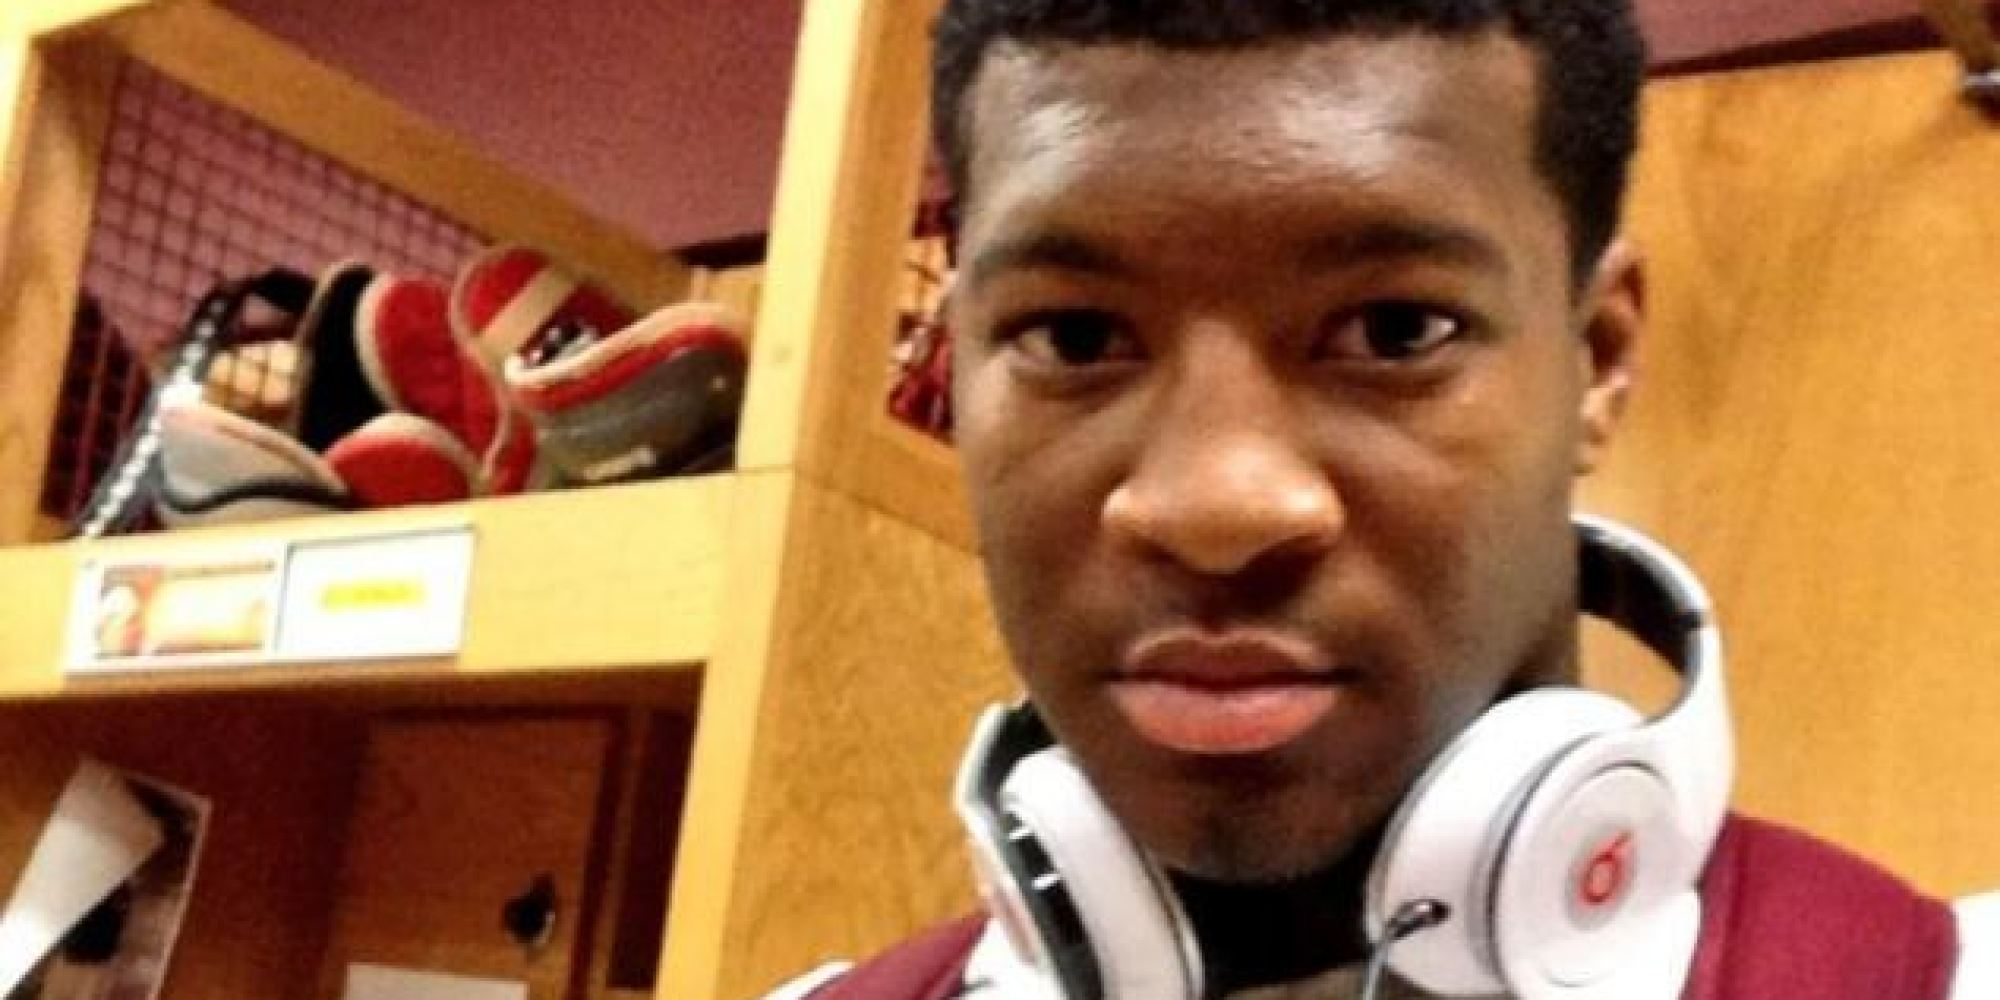 Jameis Winston Cited For Stealing Crab Legs From Supermarket ...